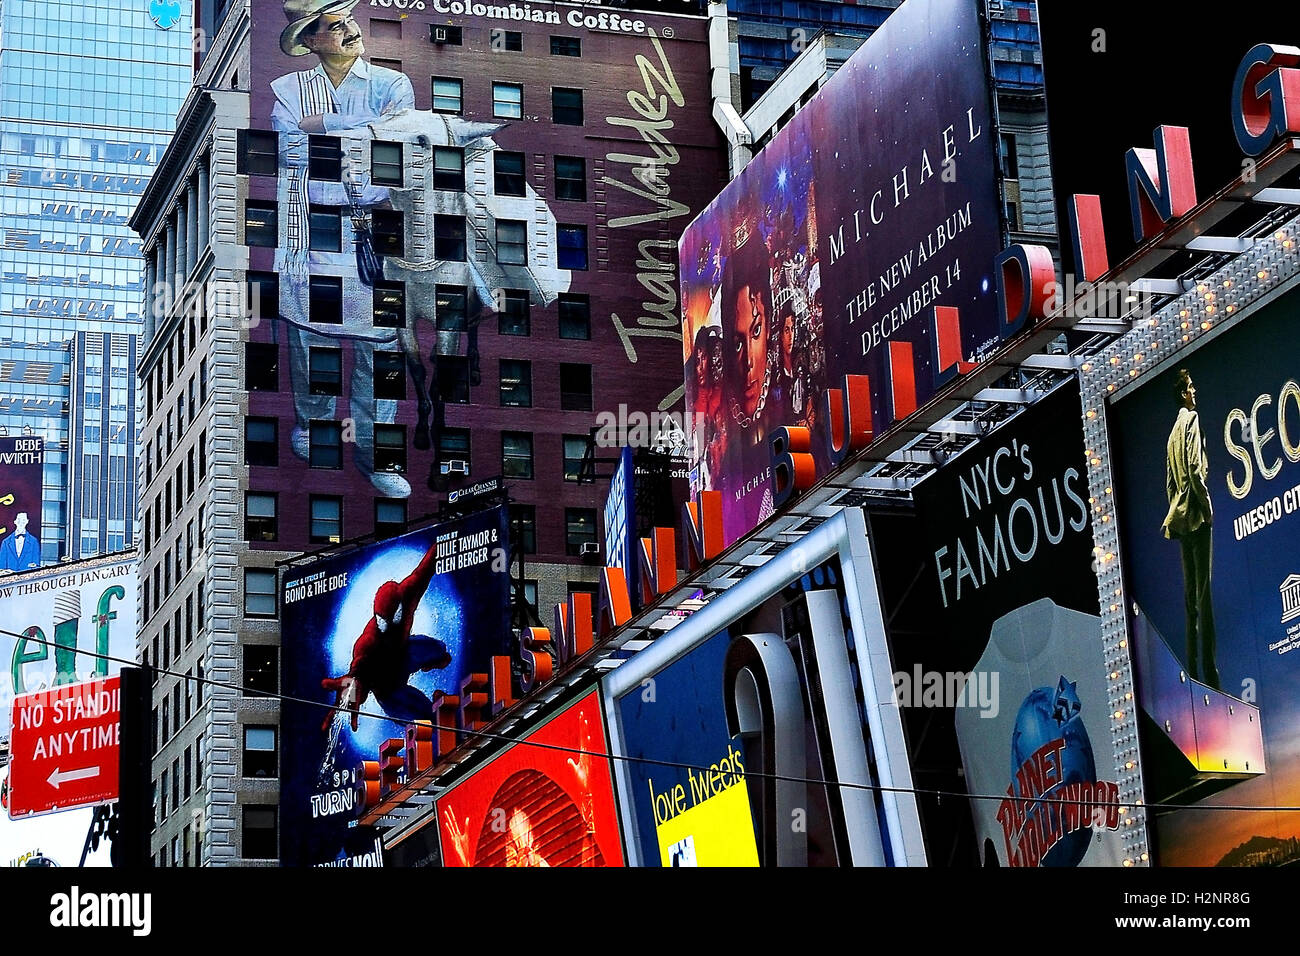 Billboards in New York, Times Square - in the Midtown Manhattan section of New York City at the junction of Broadway - Stock Image